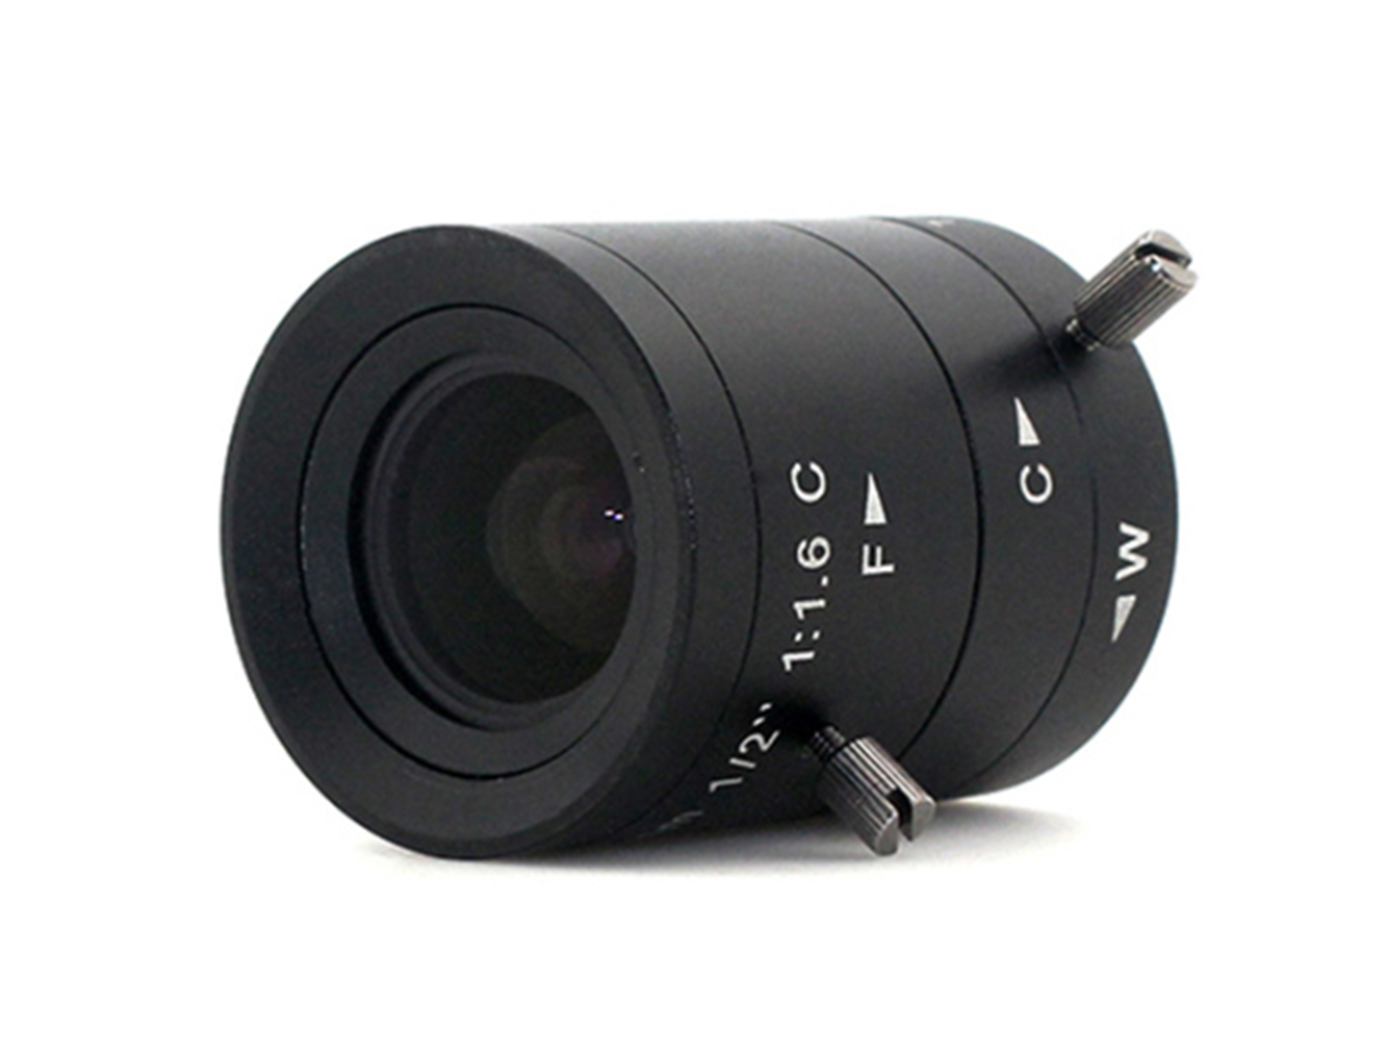 50mm 8MP Telephoto Lens for Raspberry Pi High Quality Camera wit